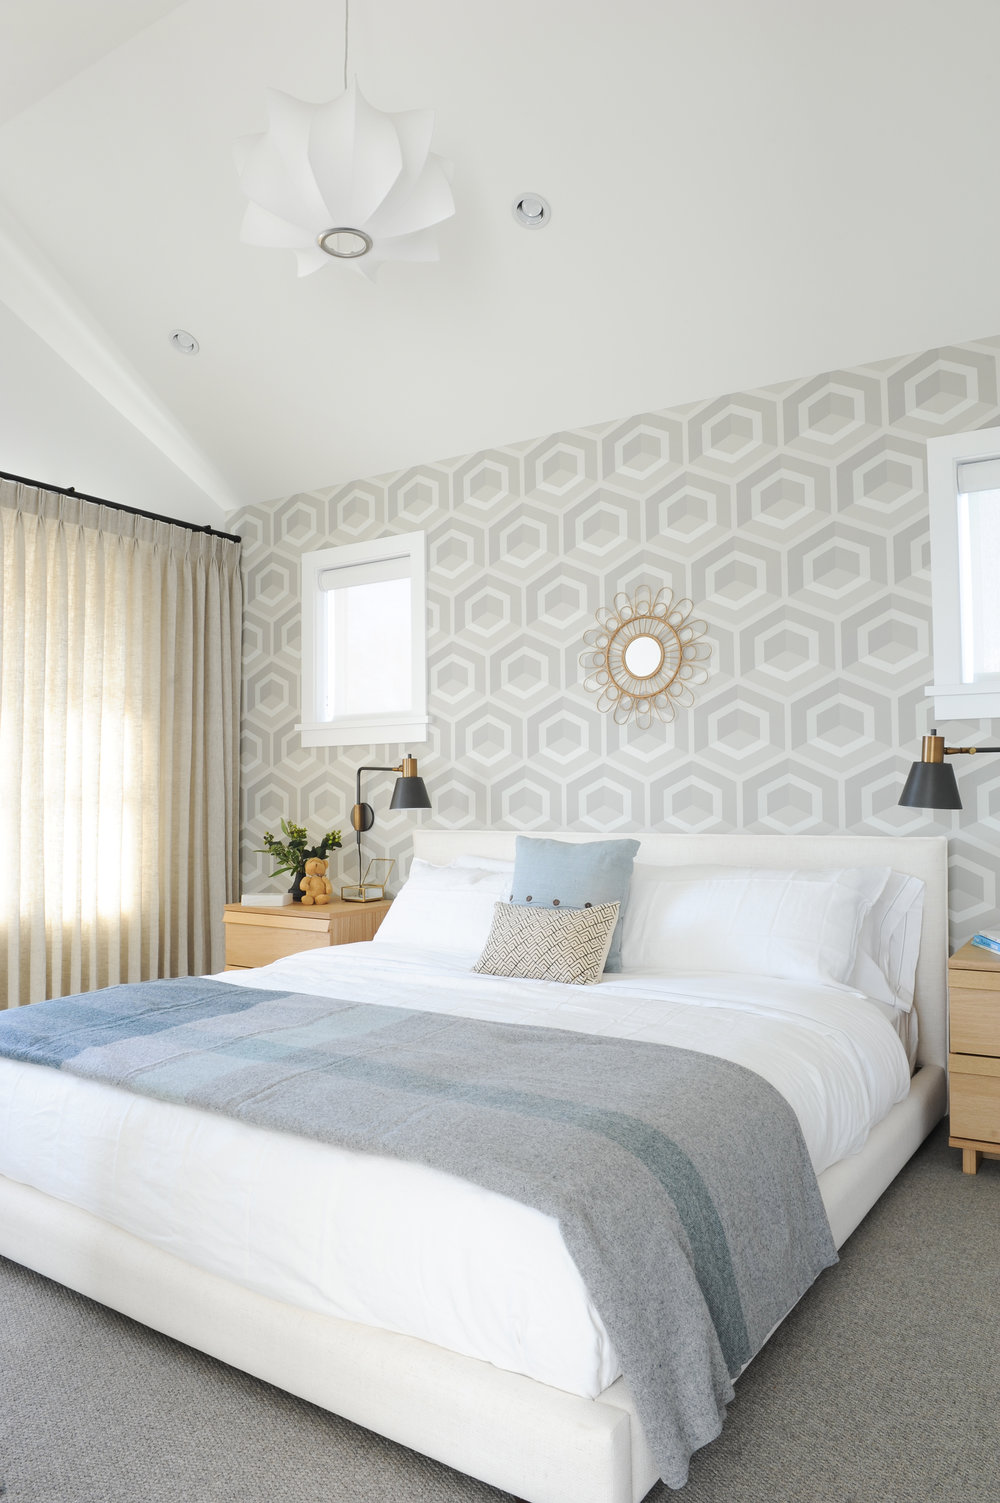 A bedroom with a white bed and two side tables sit in front of a bright honeycomb wallpaper and mirror on the wall